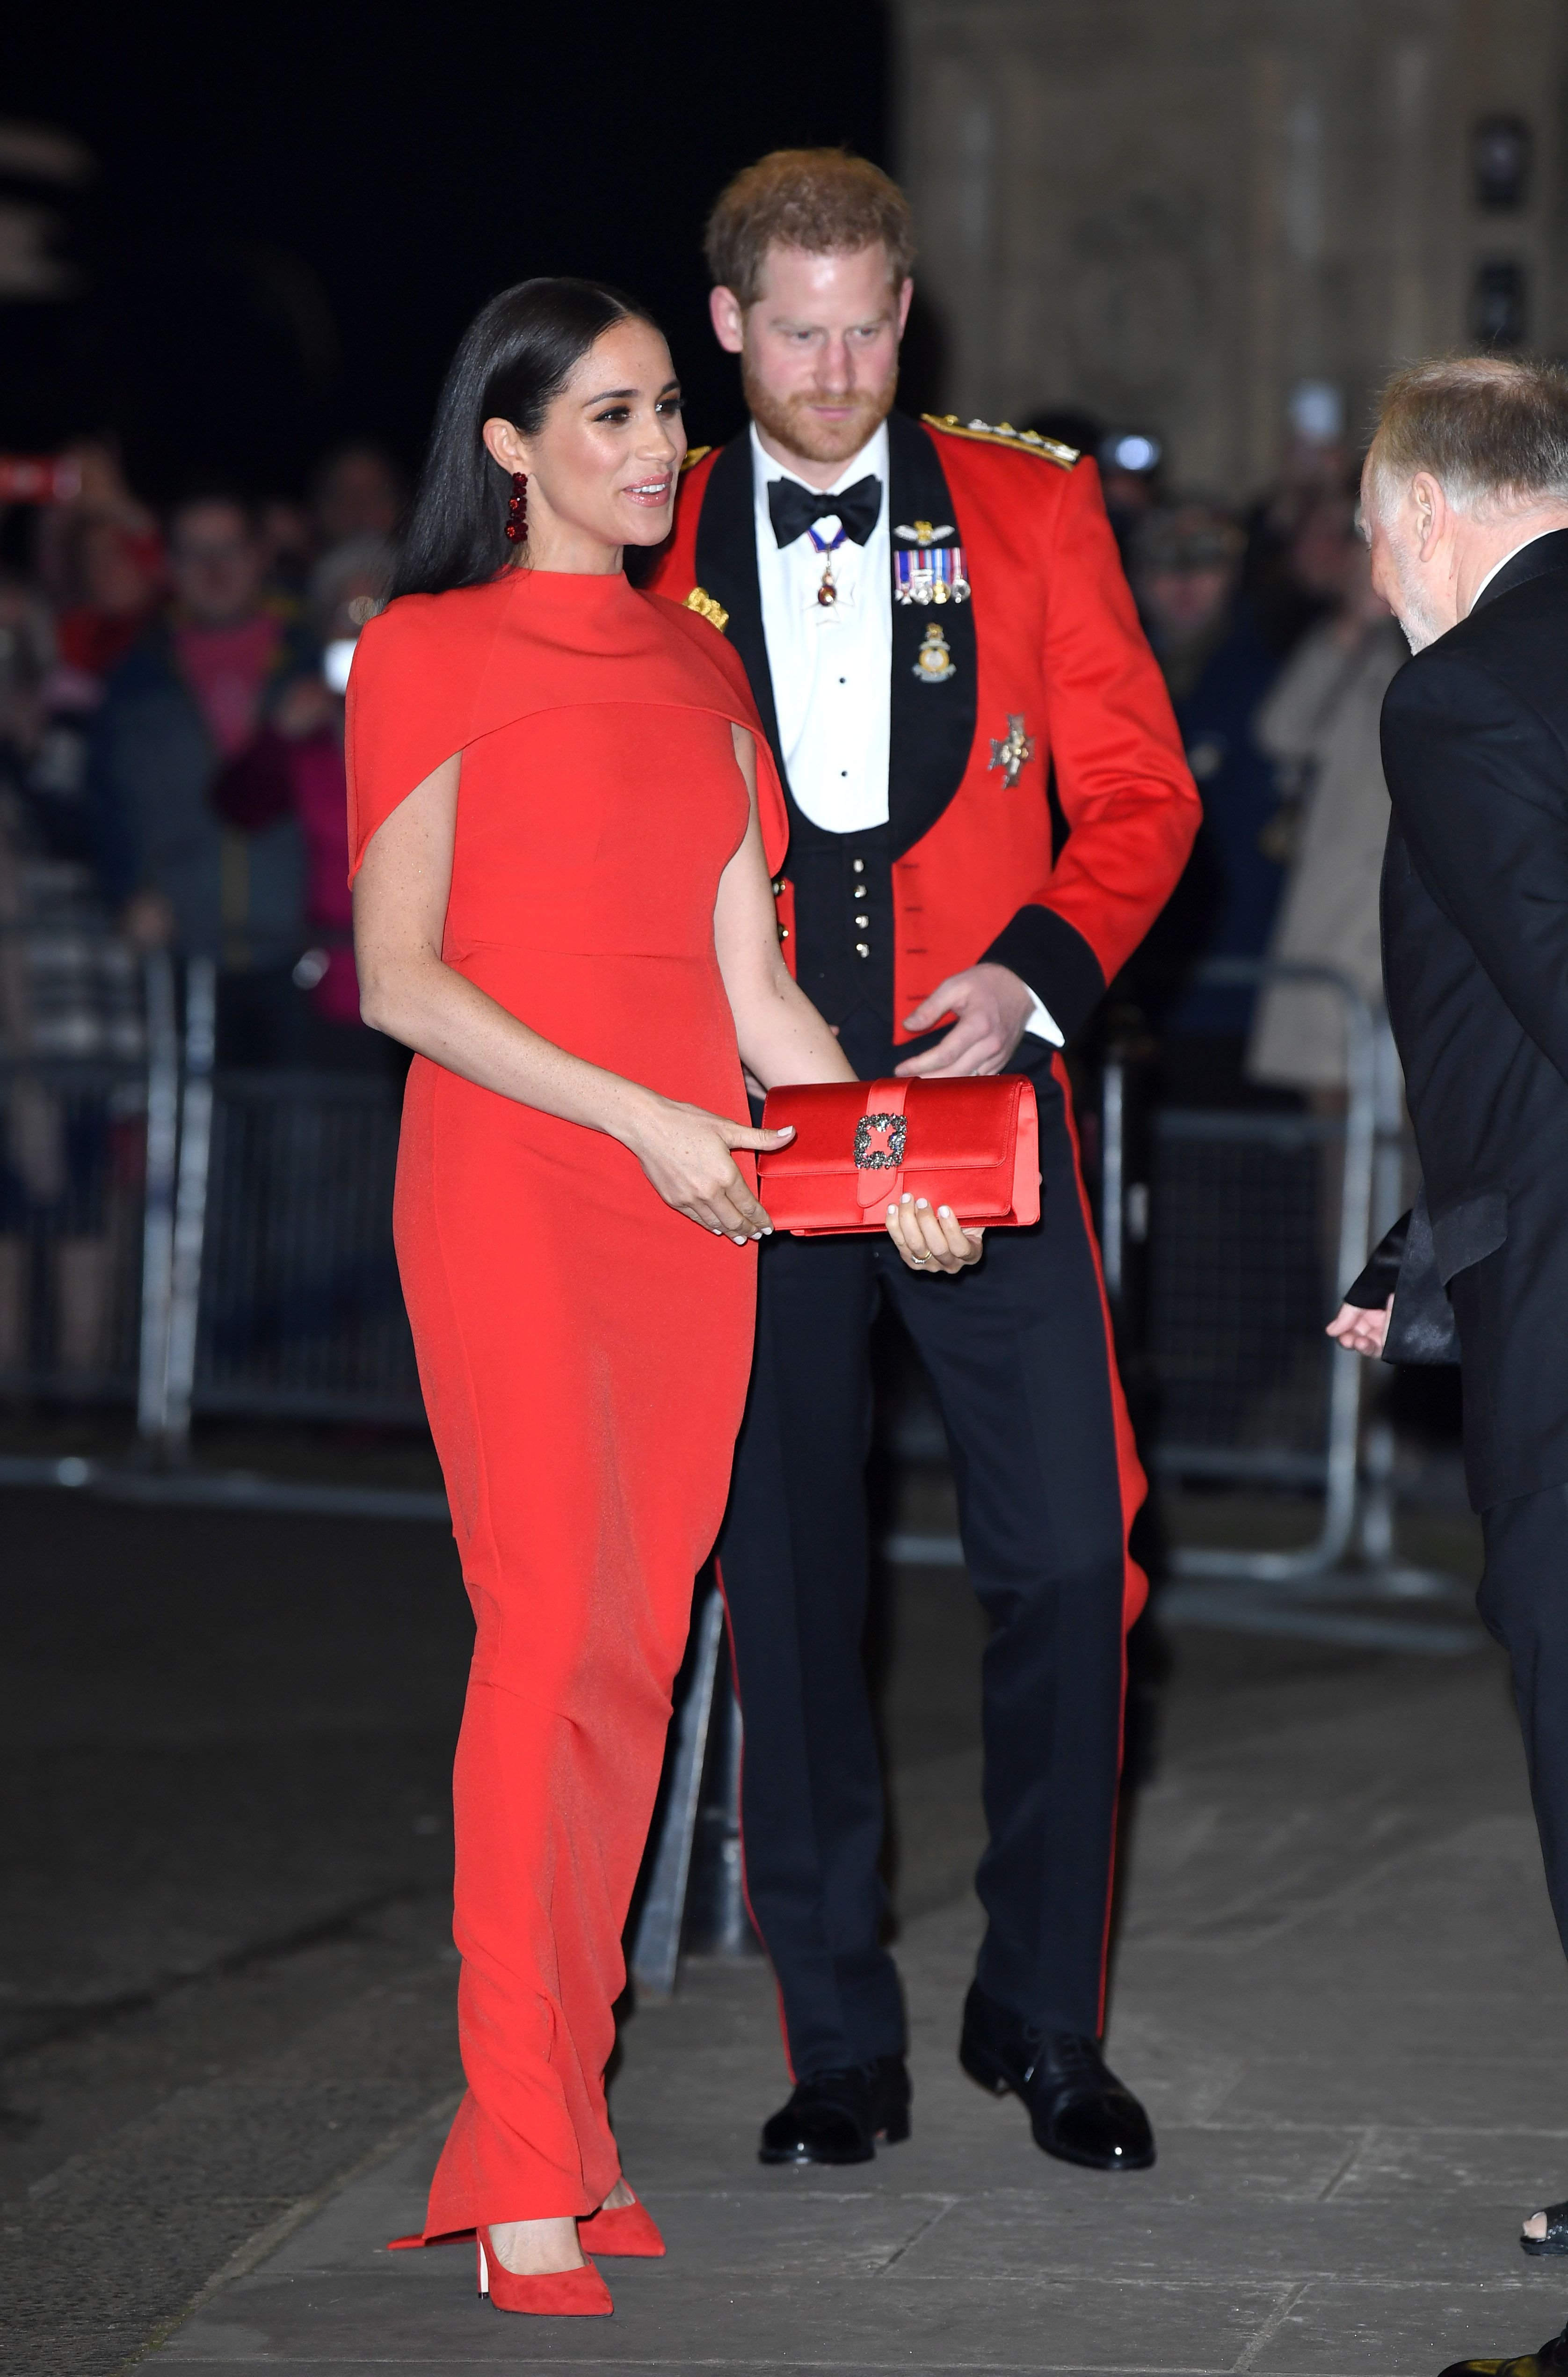 Duchess Meghan and Prince Harry at the Mountbatten Festival of Music on March 07, 2020, in London, England | Photo: Karwai Tang/WireImage/Getty Images